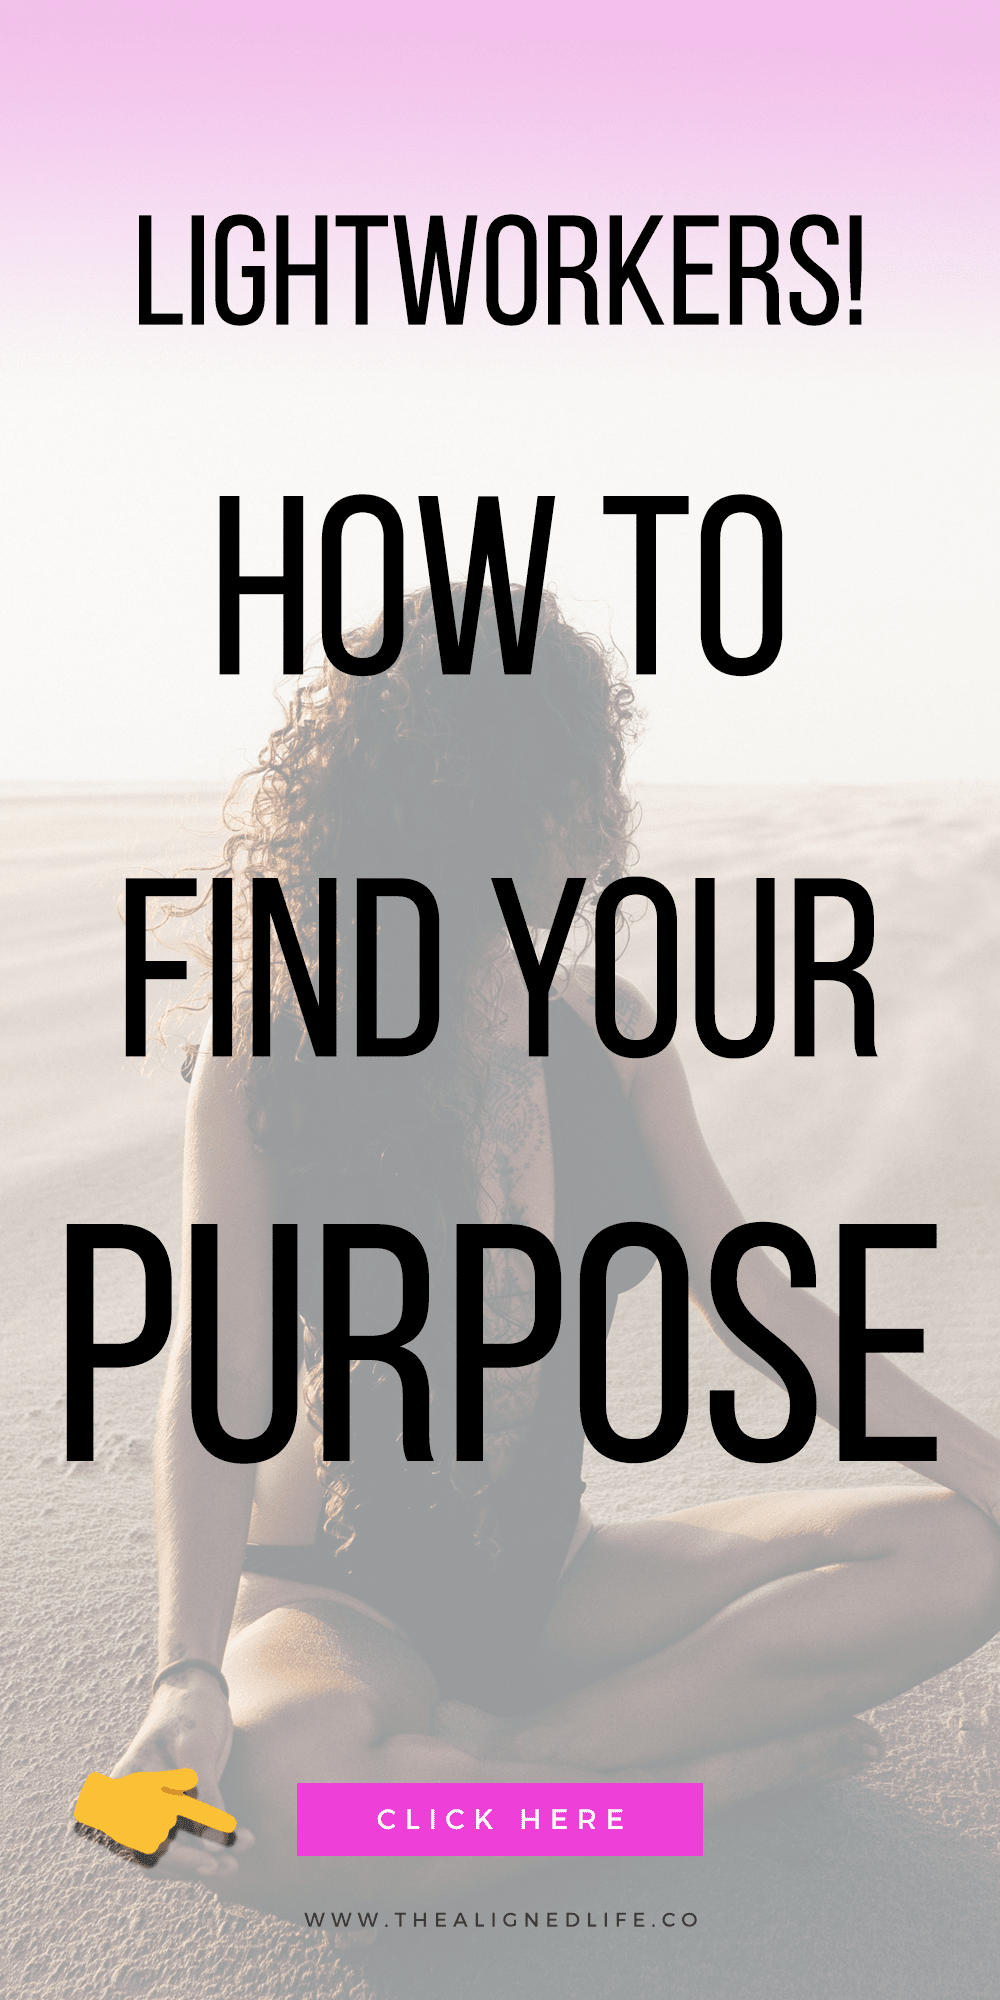 girl on the beach with text that reads Lightworkers! 3 Questions To Help You Find Your Purpose